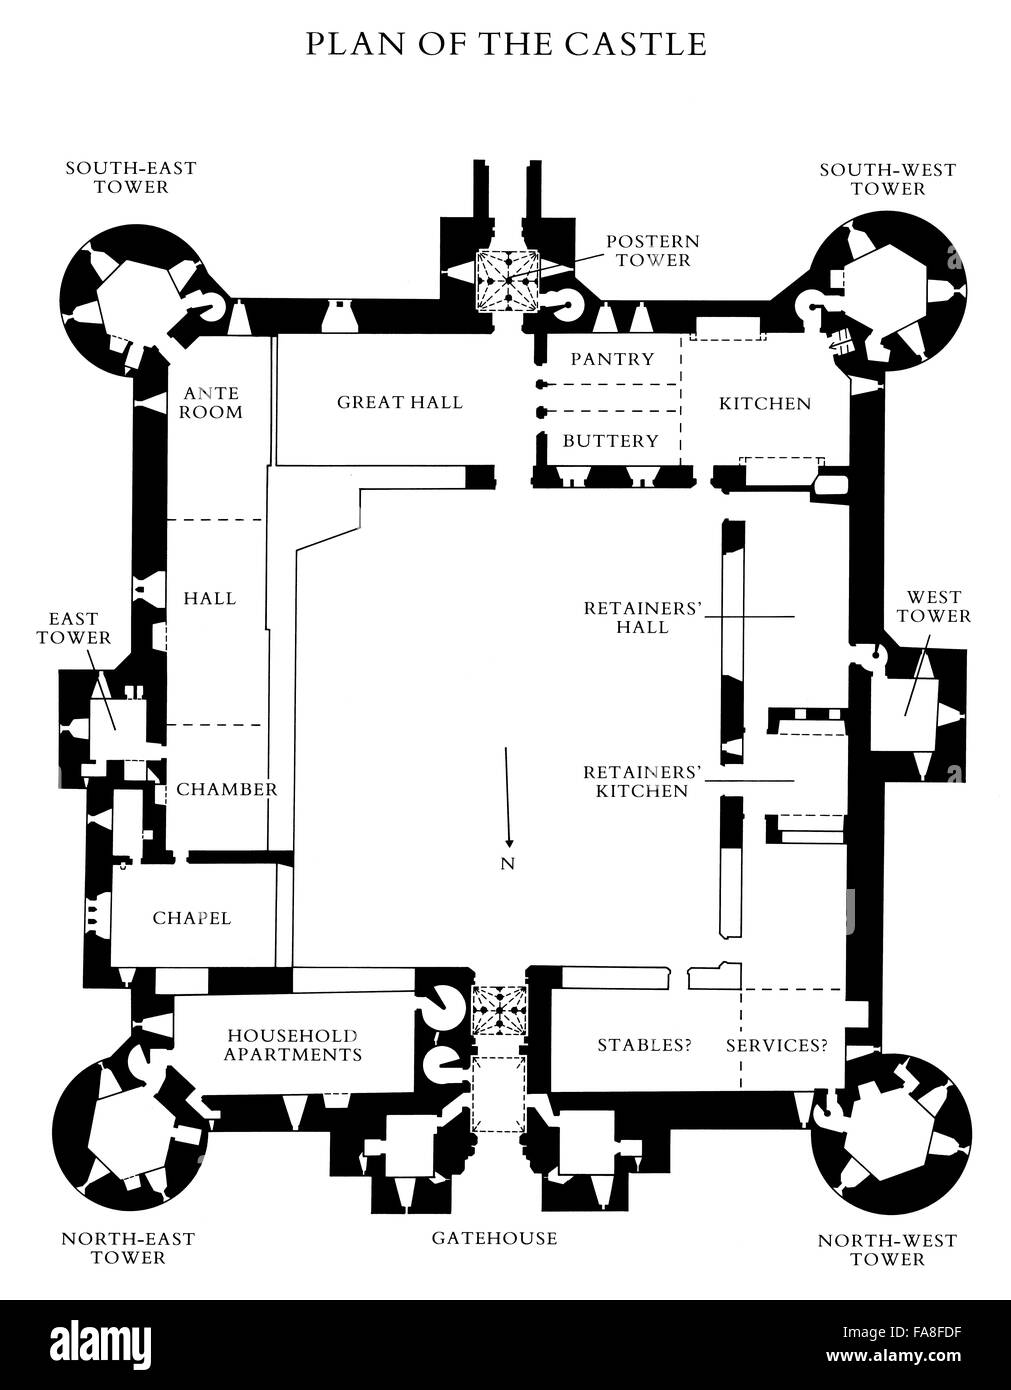 Castle Floor Plan High Resolution Stock Photography And Images Alamy